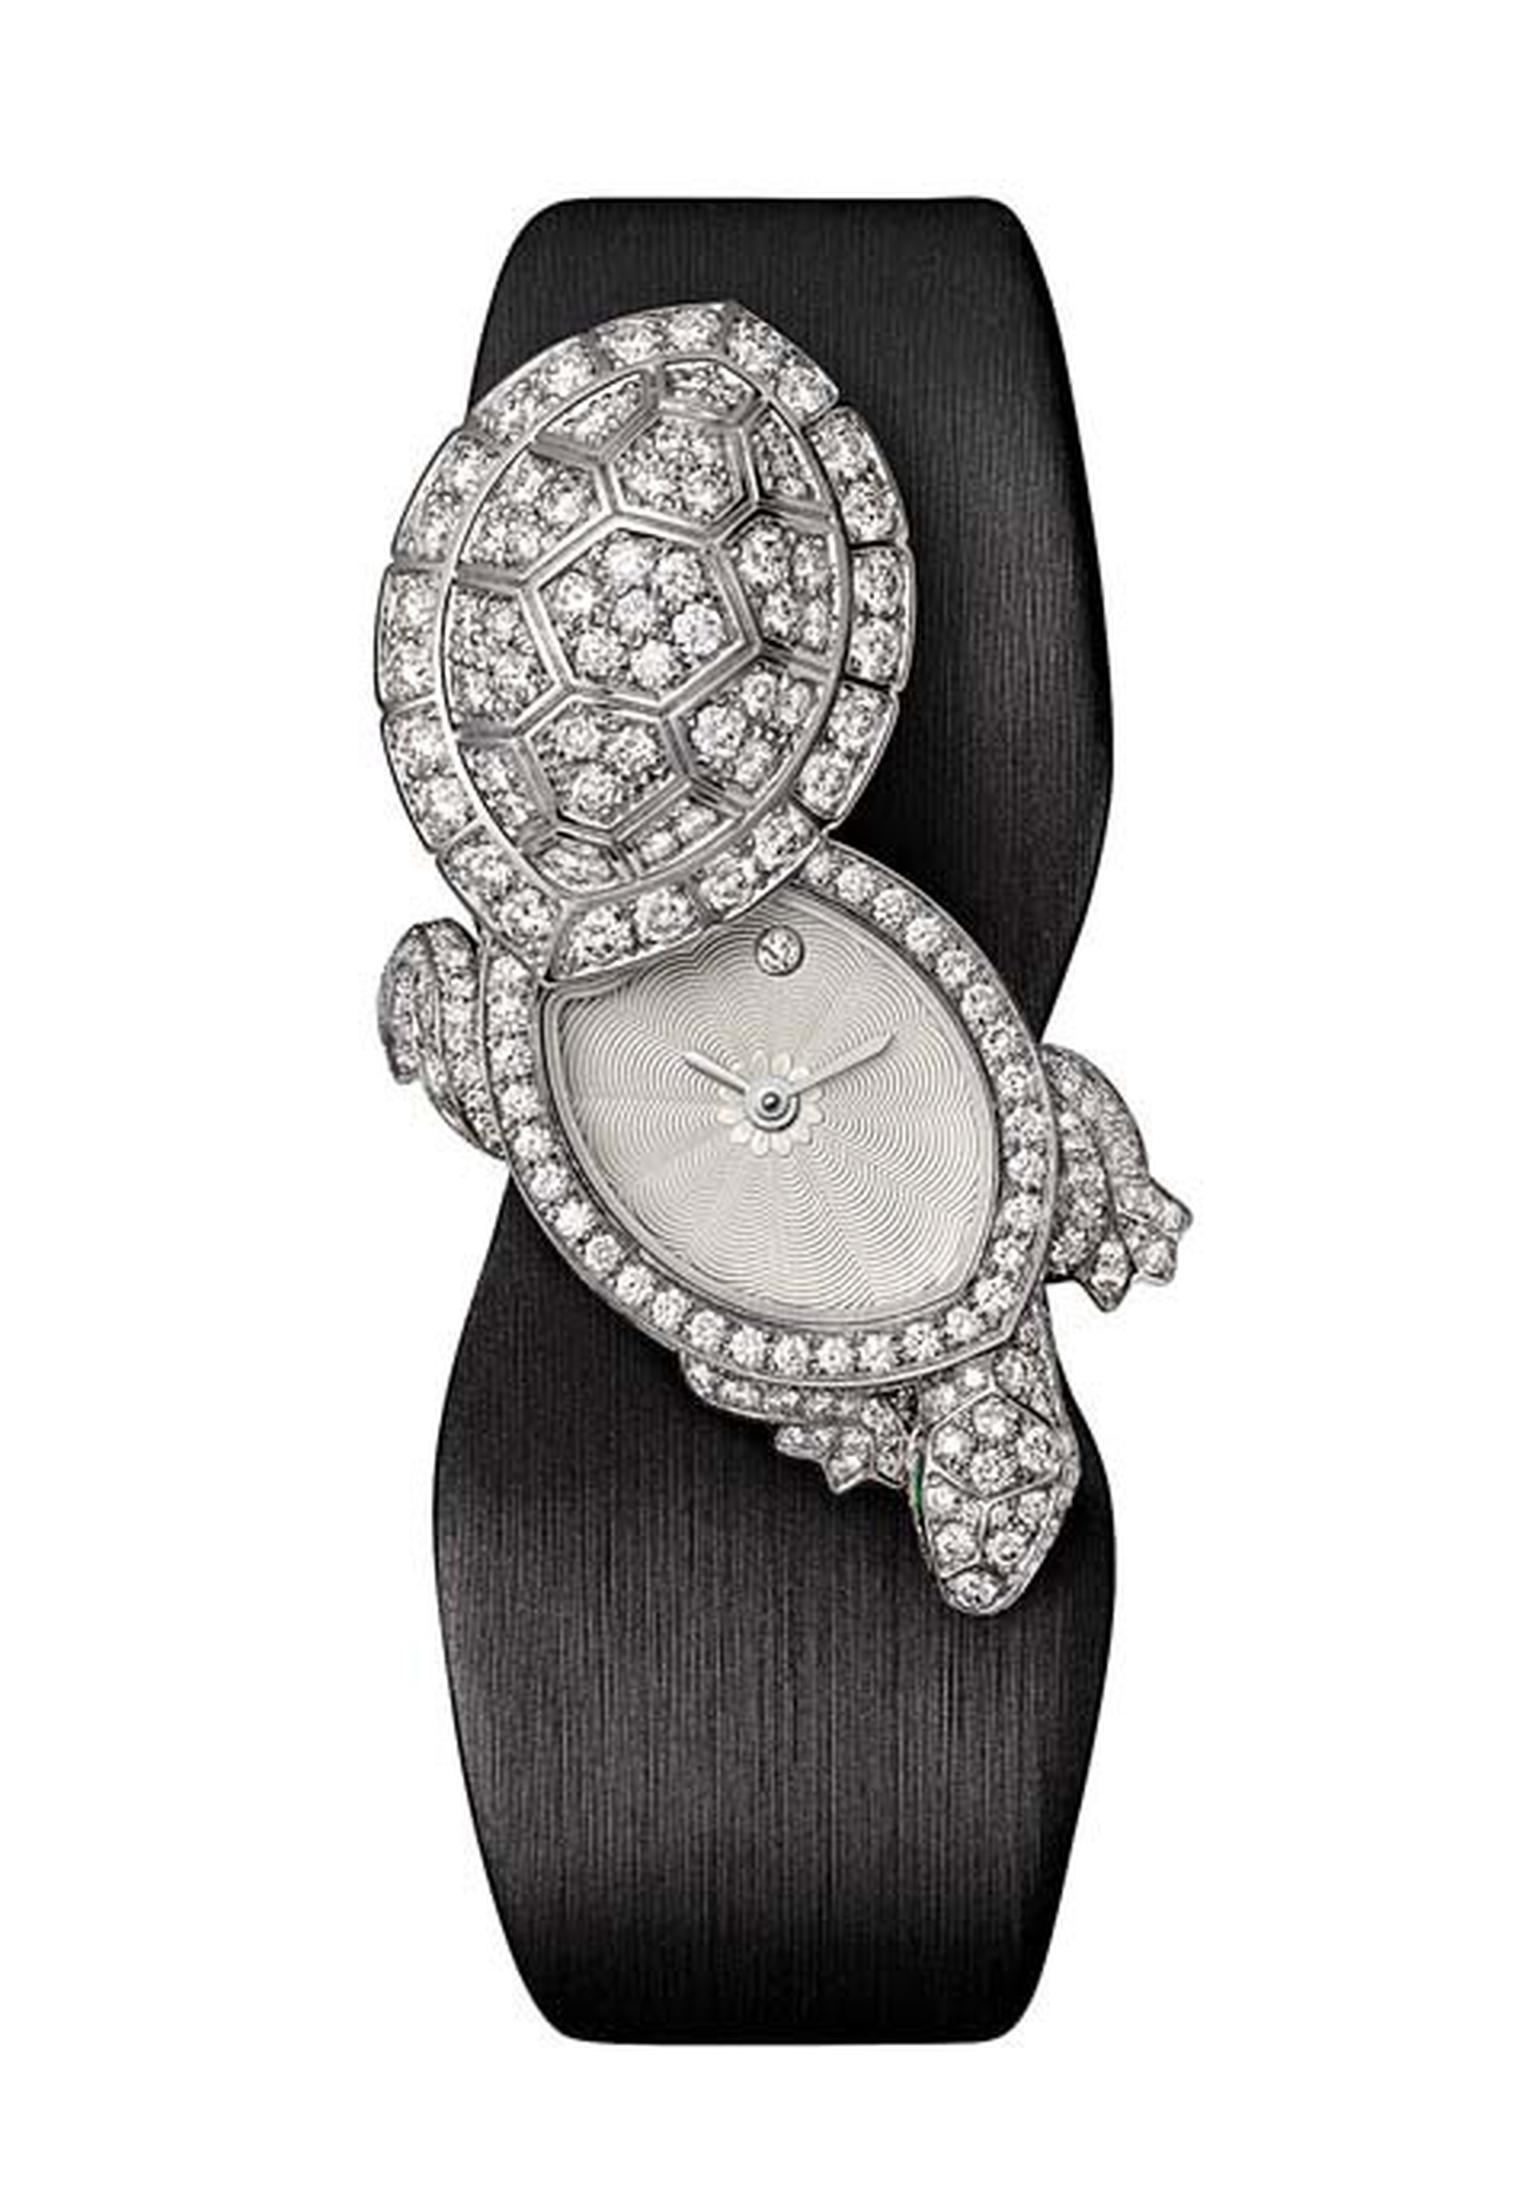 Cartier_Fabuleux_TORTOISE_DIAMONDS_2